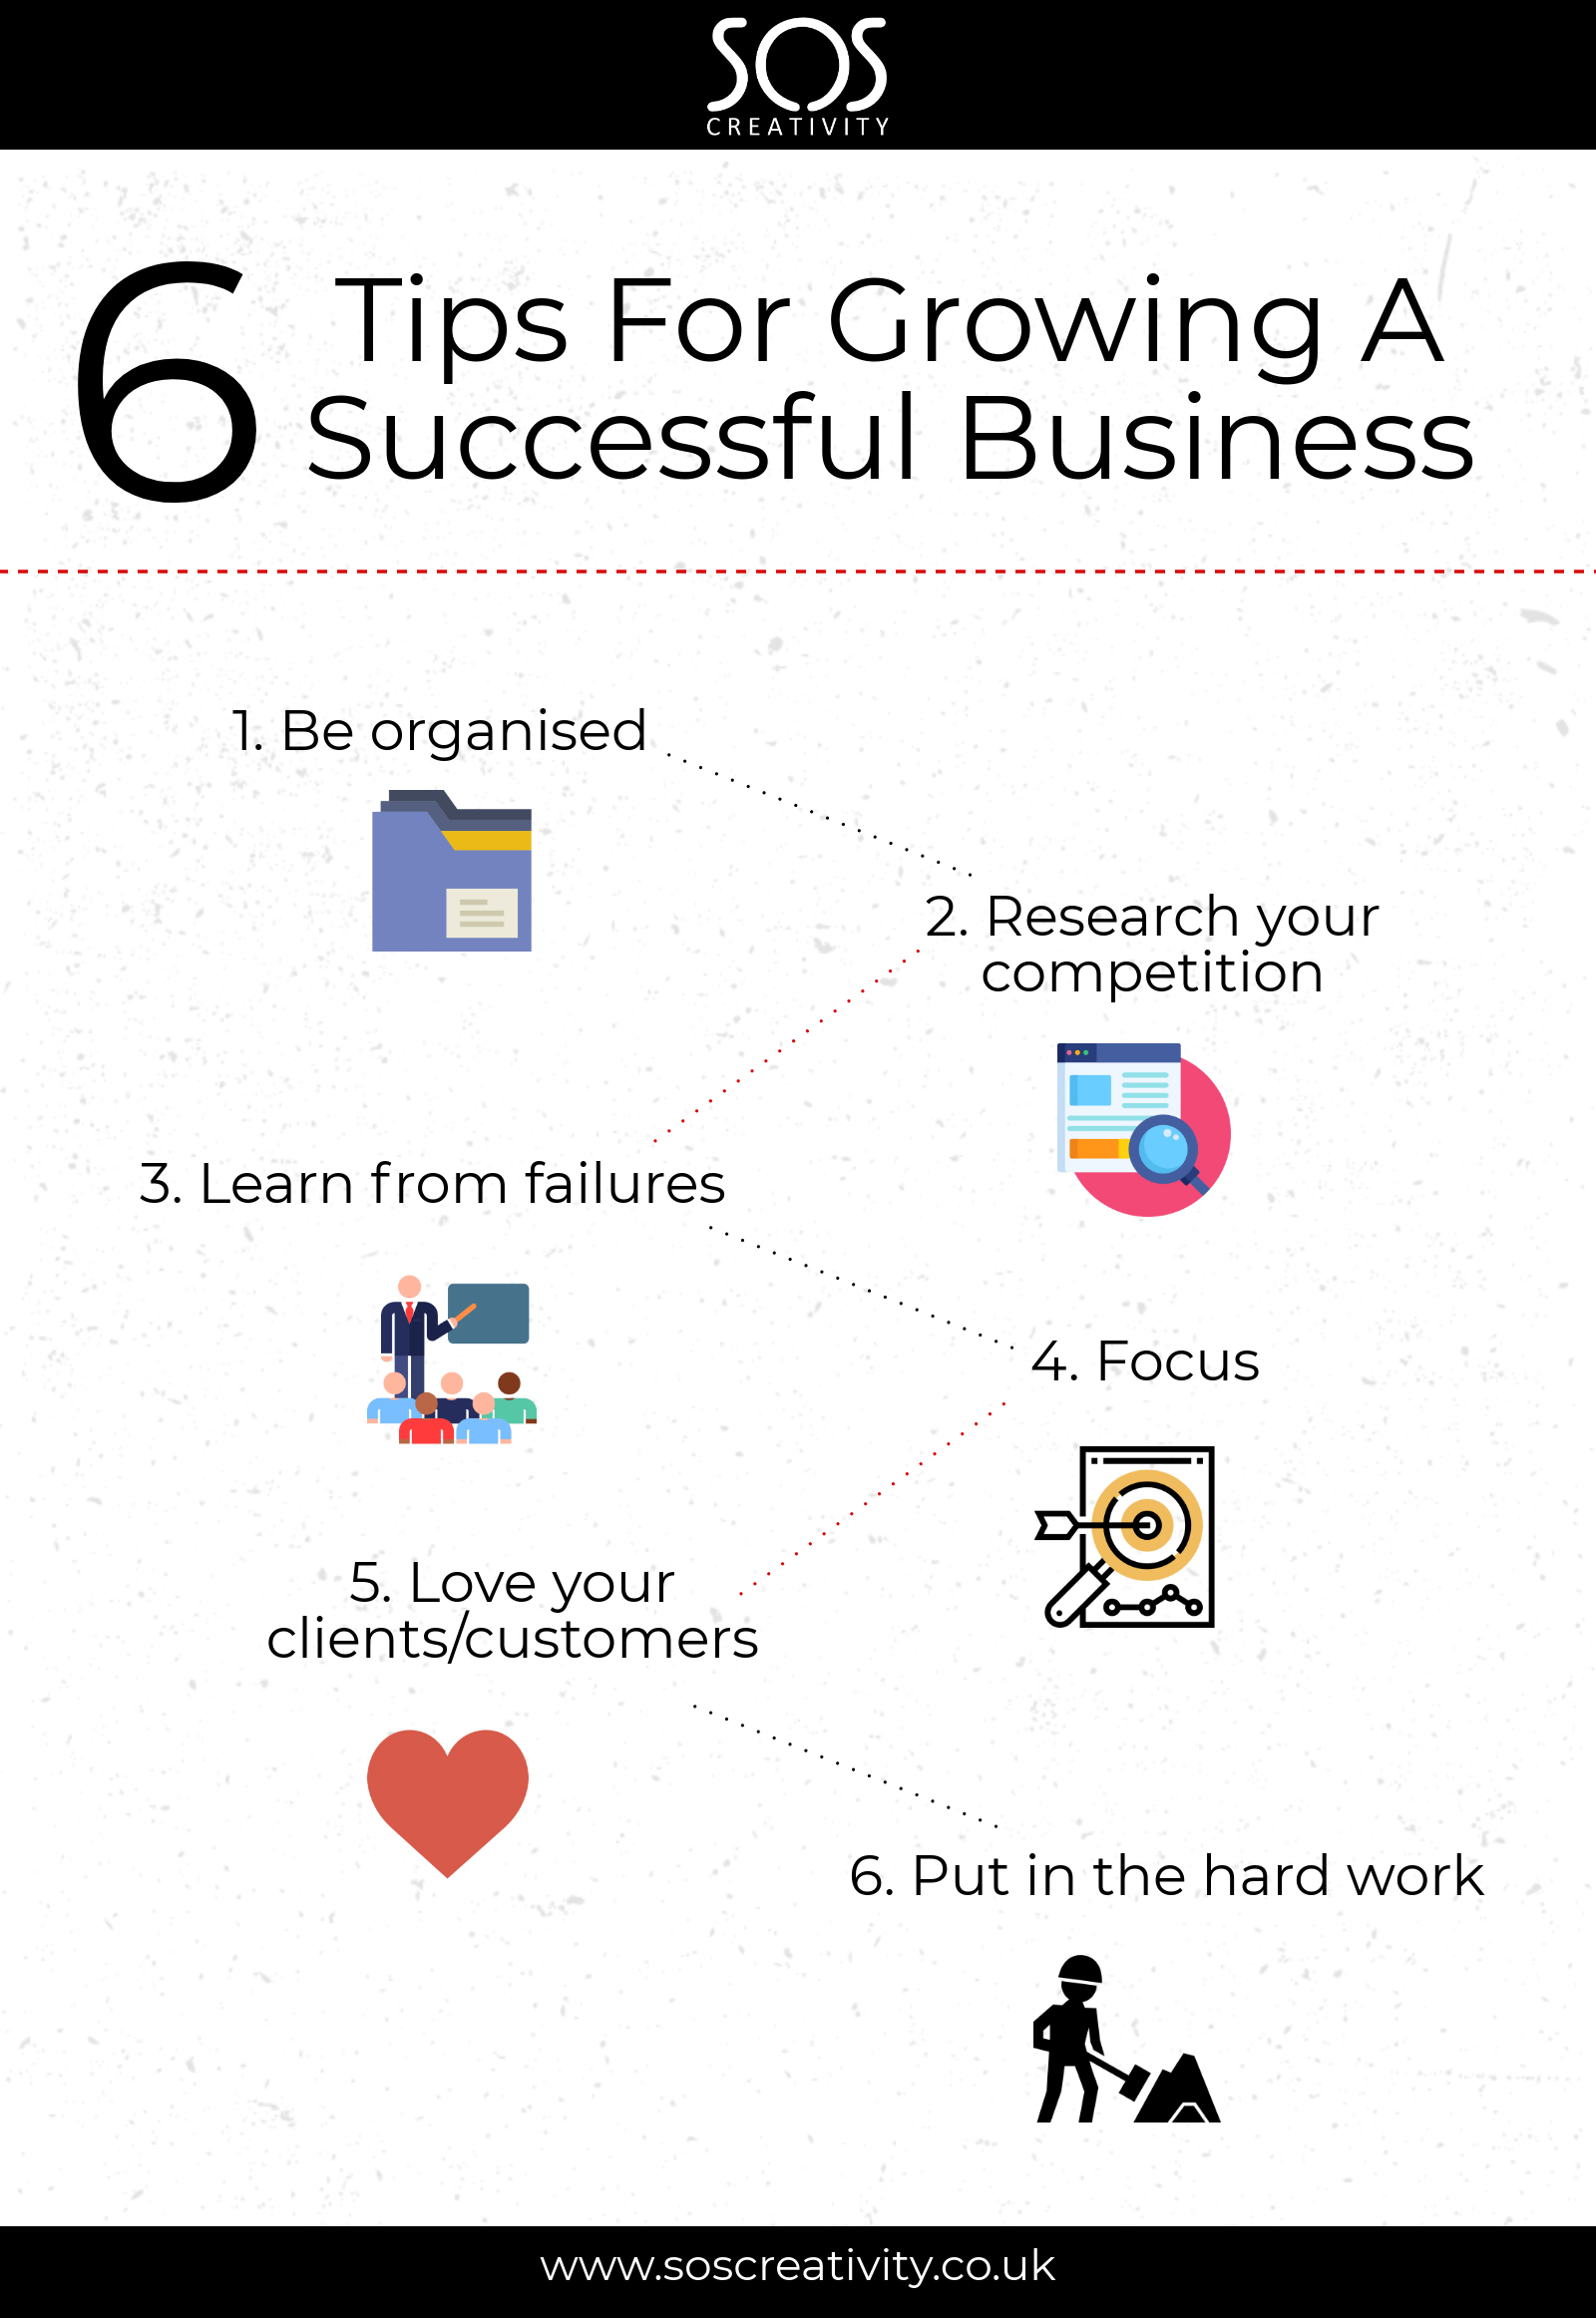 6 tips for growing a successful business